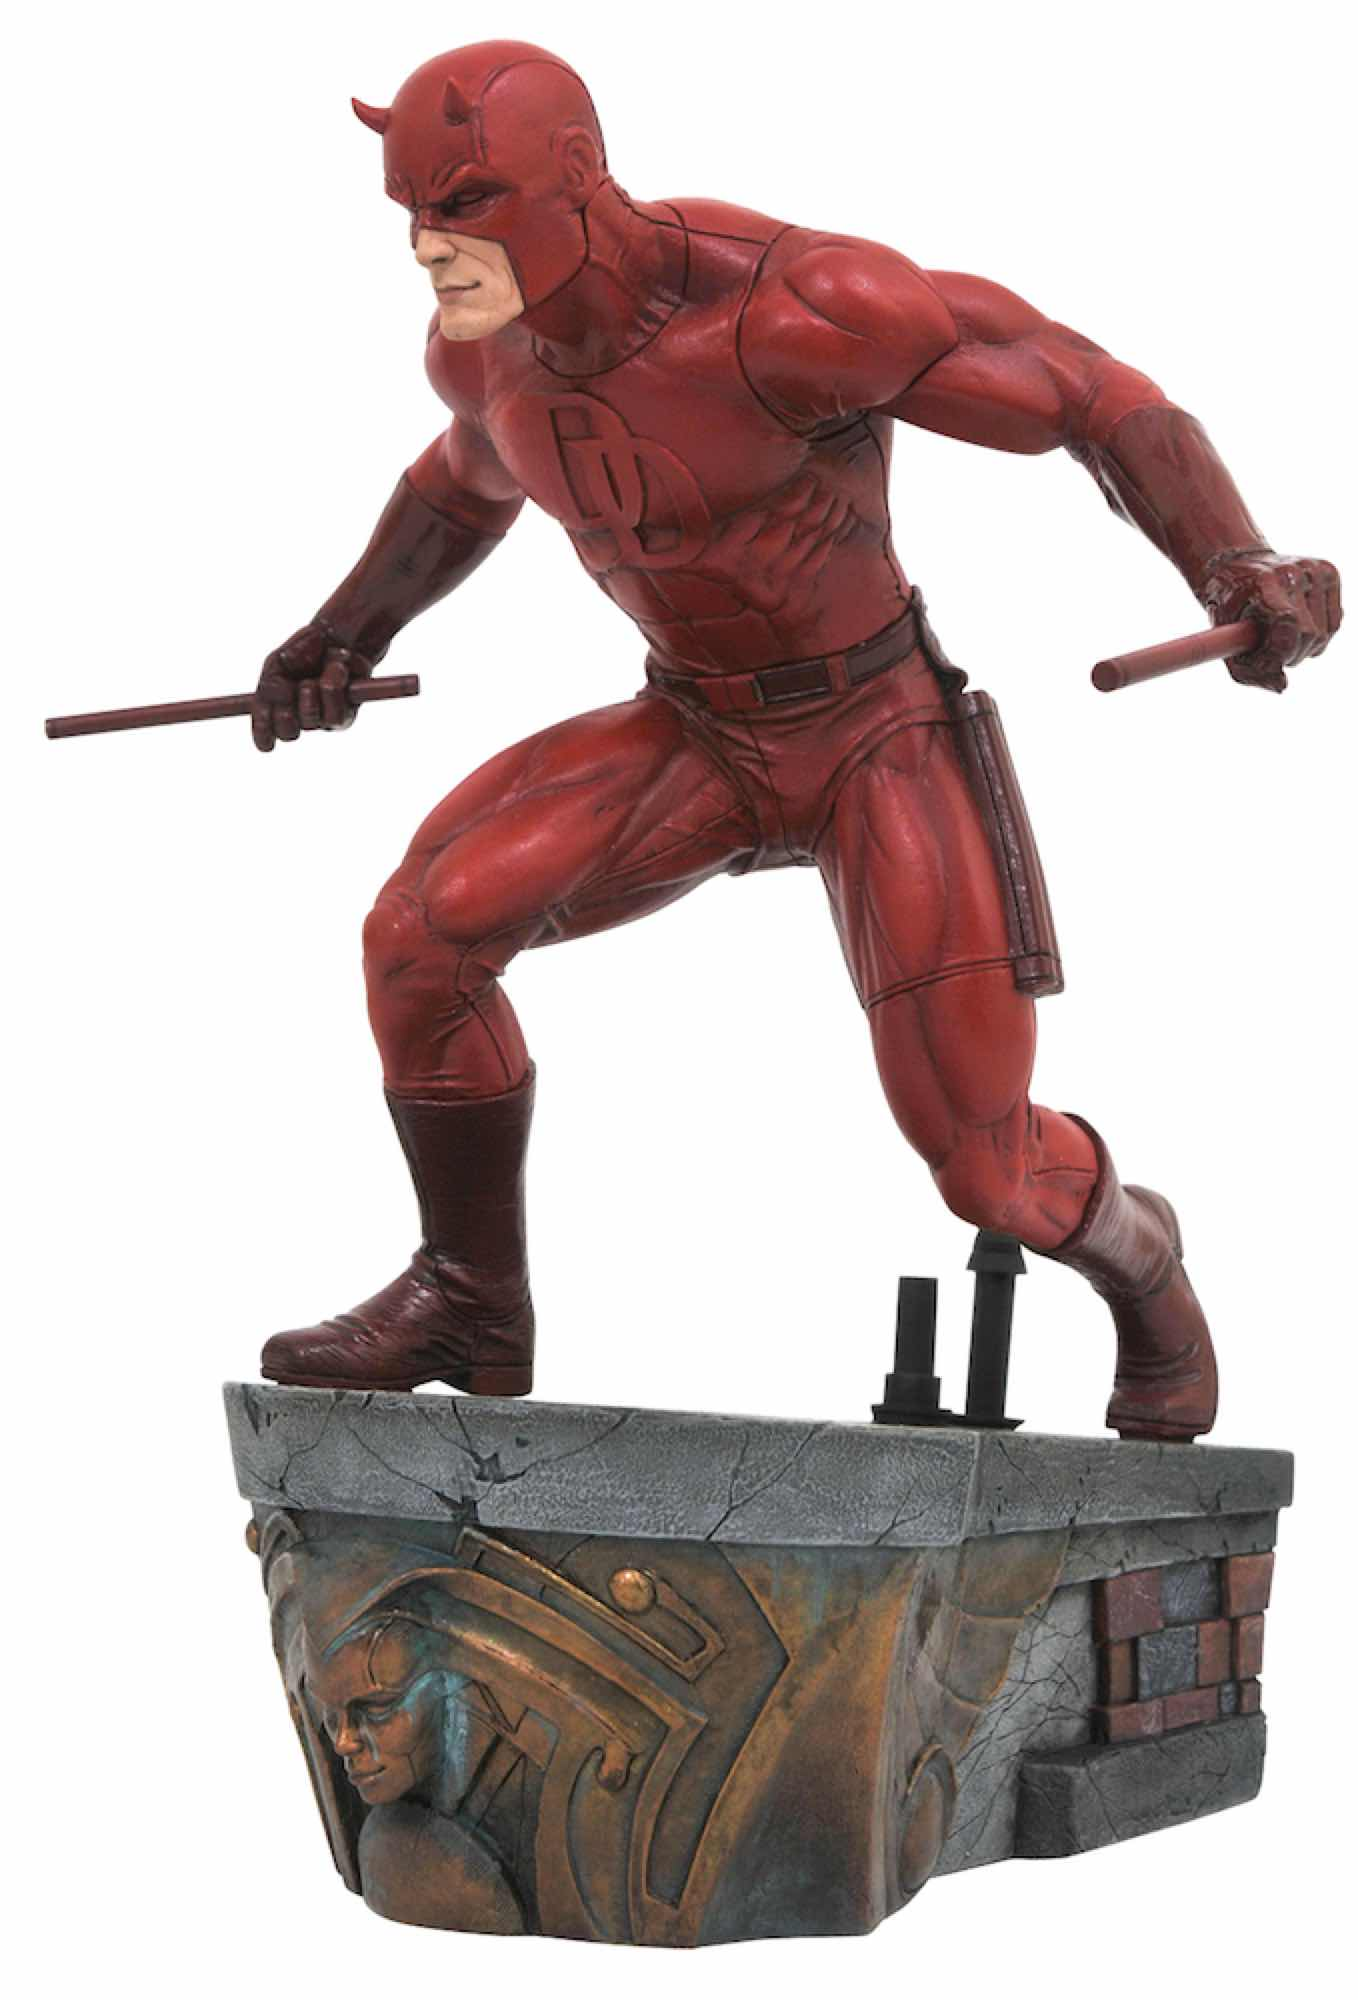 DAREDEVIL ESTATUA 30,5 CM RESINA MARVEL COMIC PREMIER COLLECTION